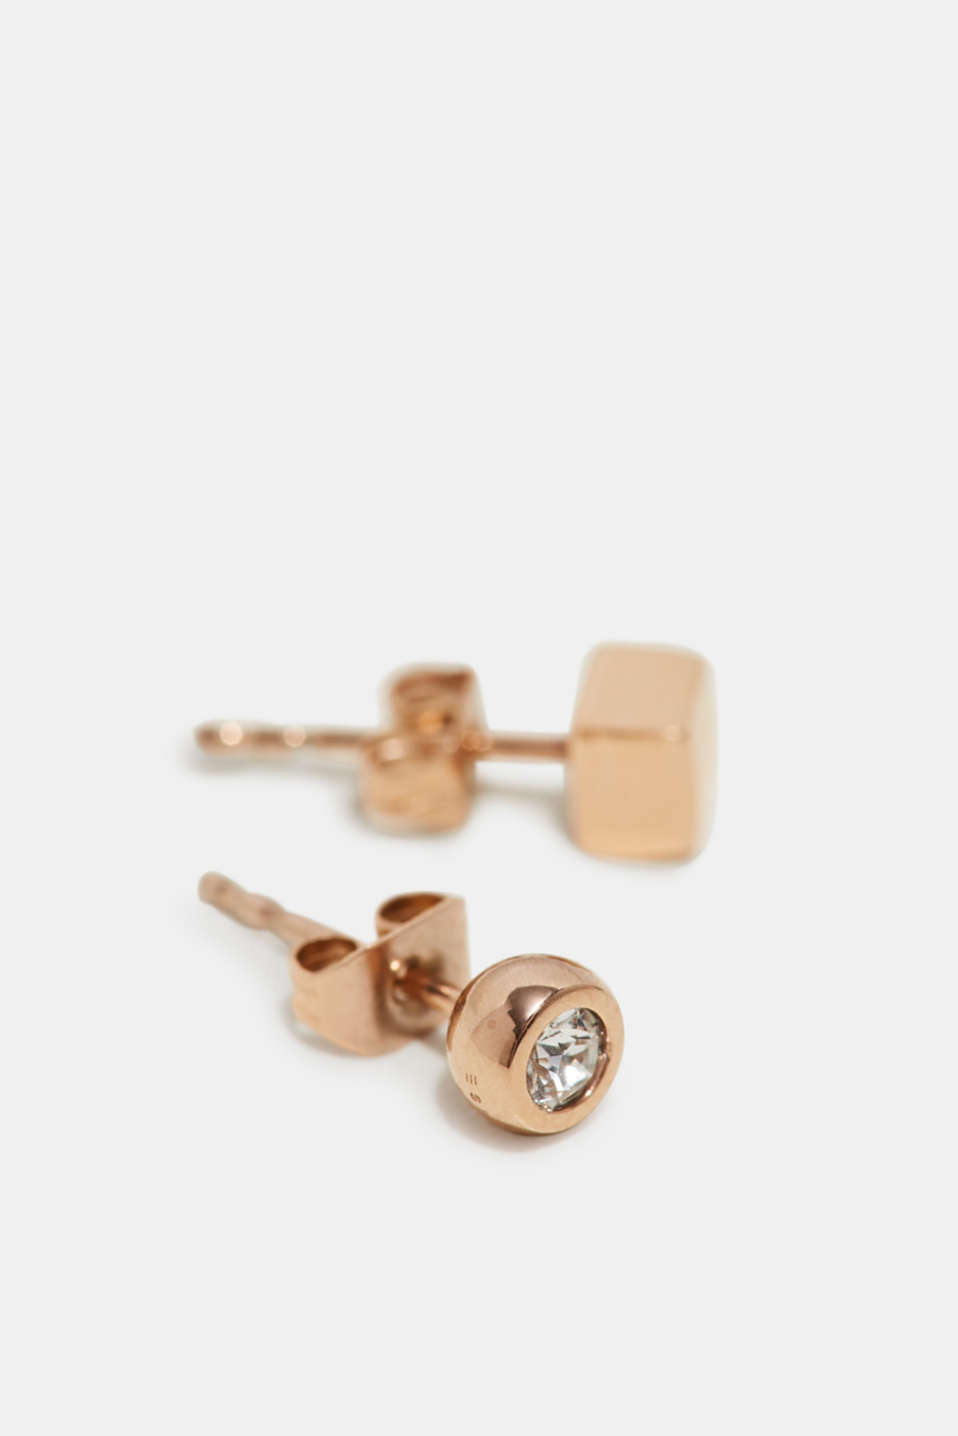 Esprit - Rose gold stud earrings, made of stainless steel